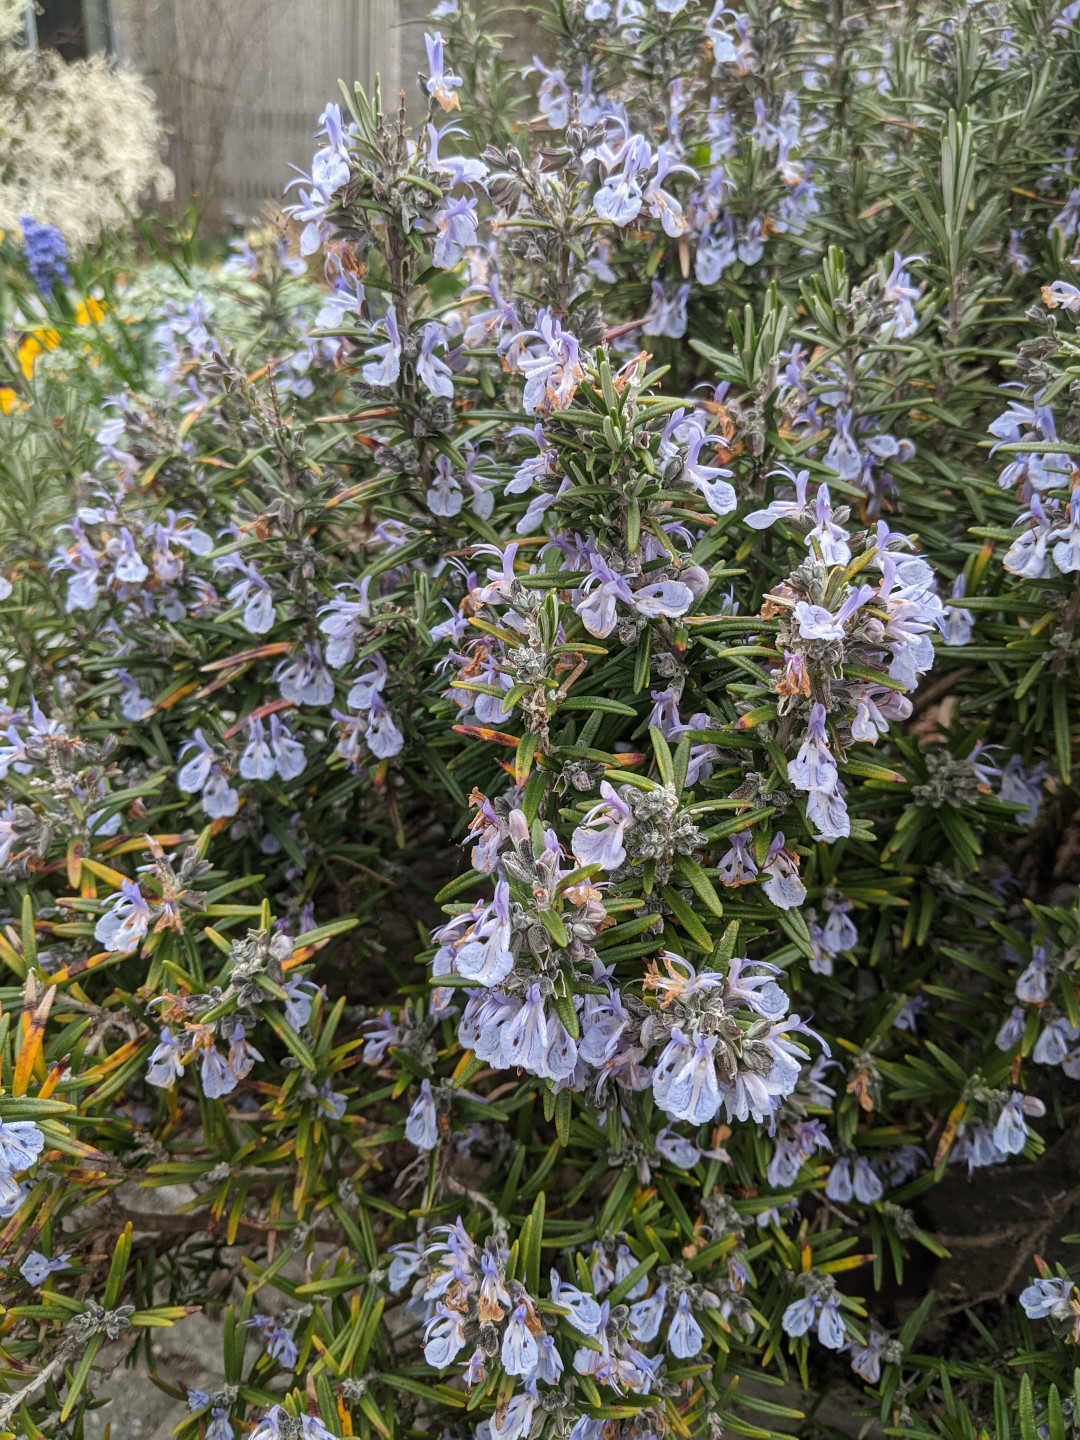 rosemary shrub with purple flowers